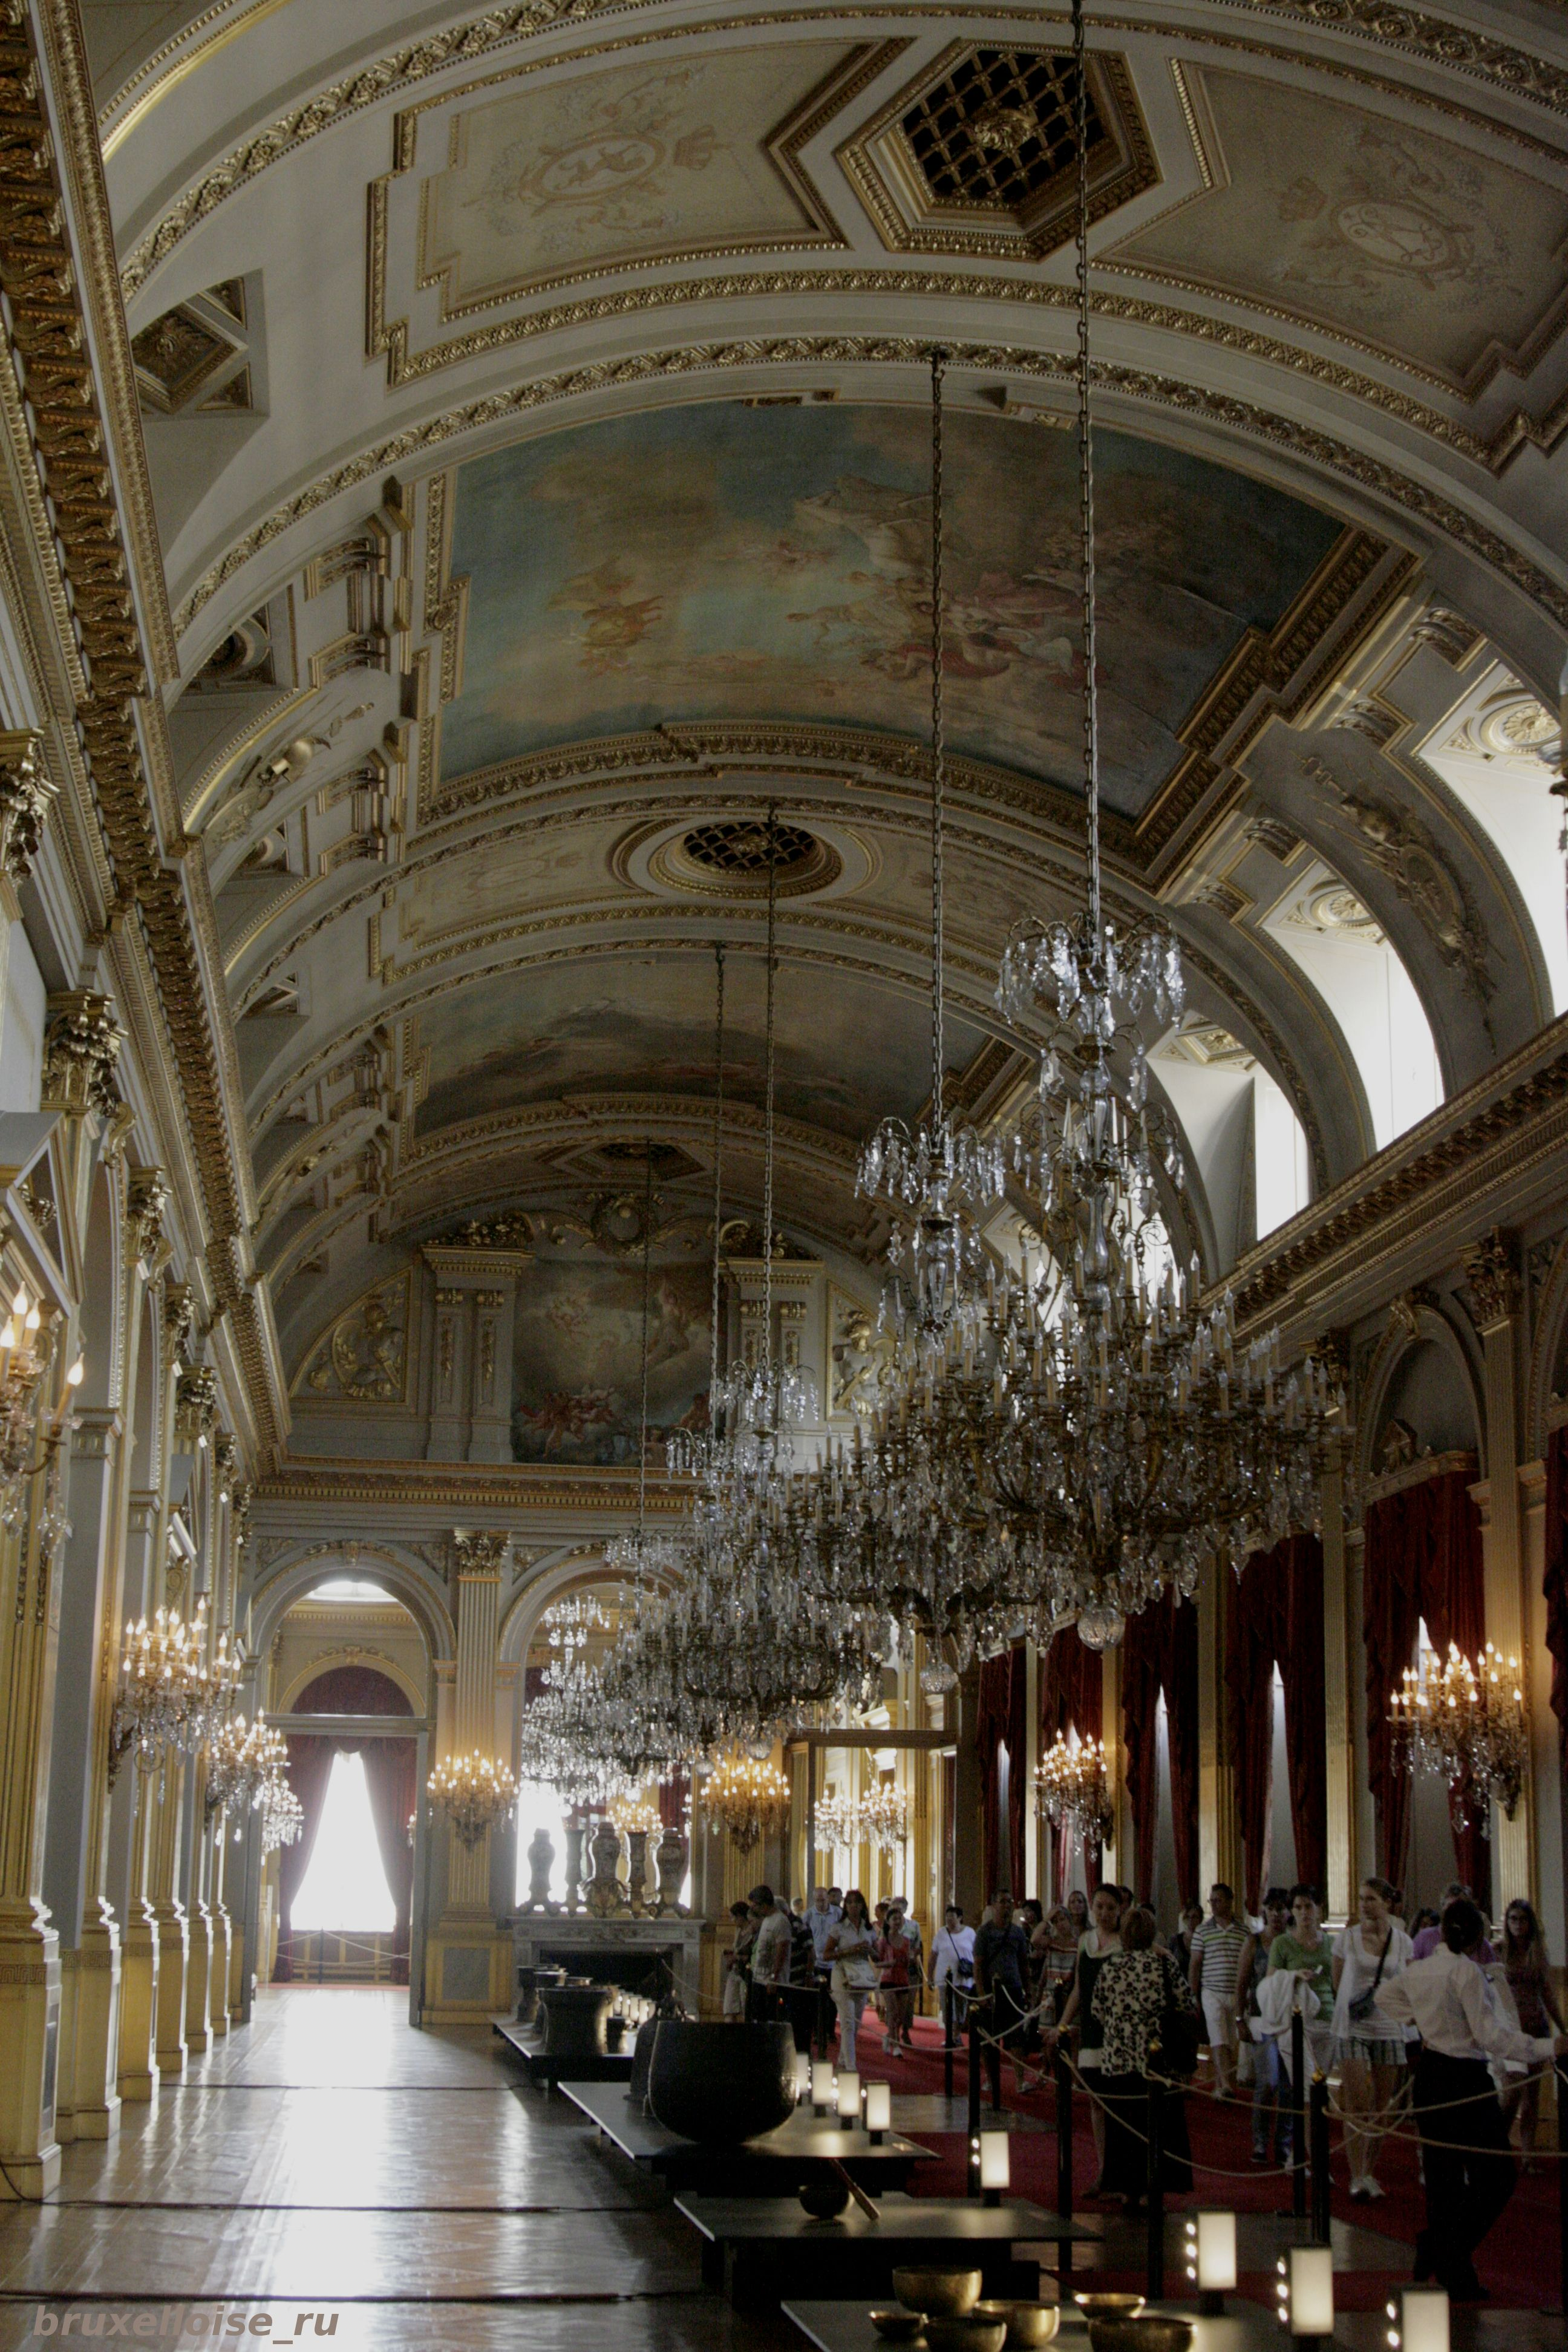 Royal Palace: interiors. Palace, Leopold, now, Dutch, Salon, Belgians, public, palace, interiors, portraits, end, death, king, only, XVIII, first, queens, salon, Brussels, parents